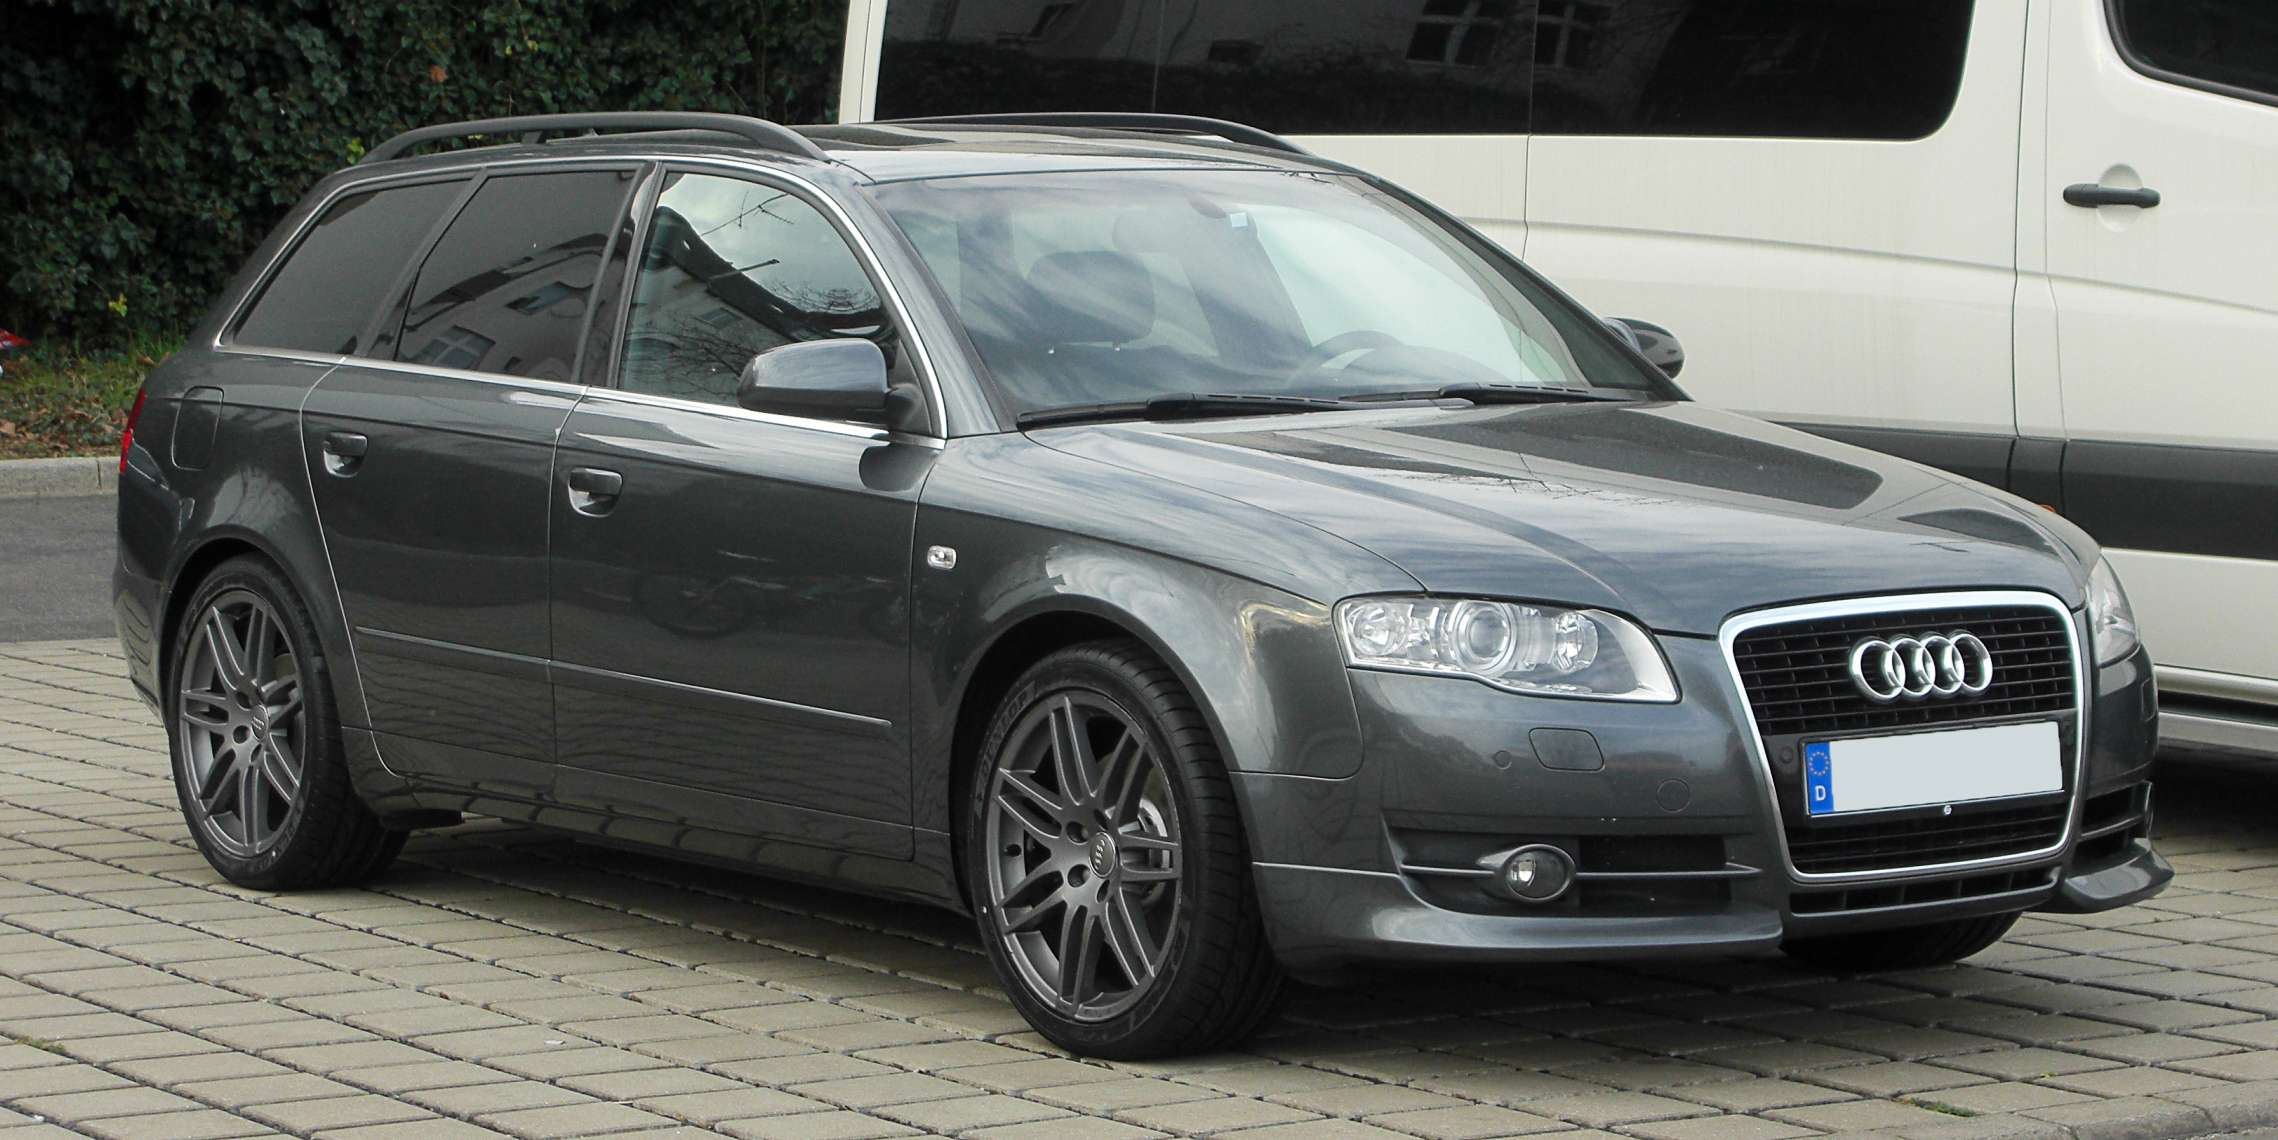 2006 audi a6 review uk dating 3